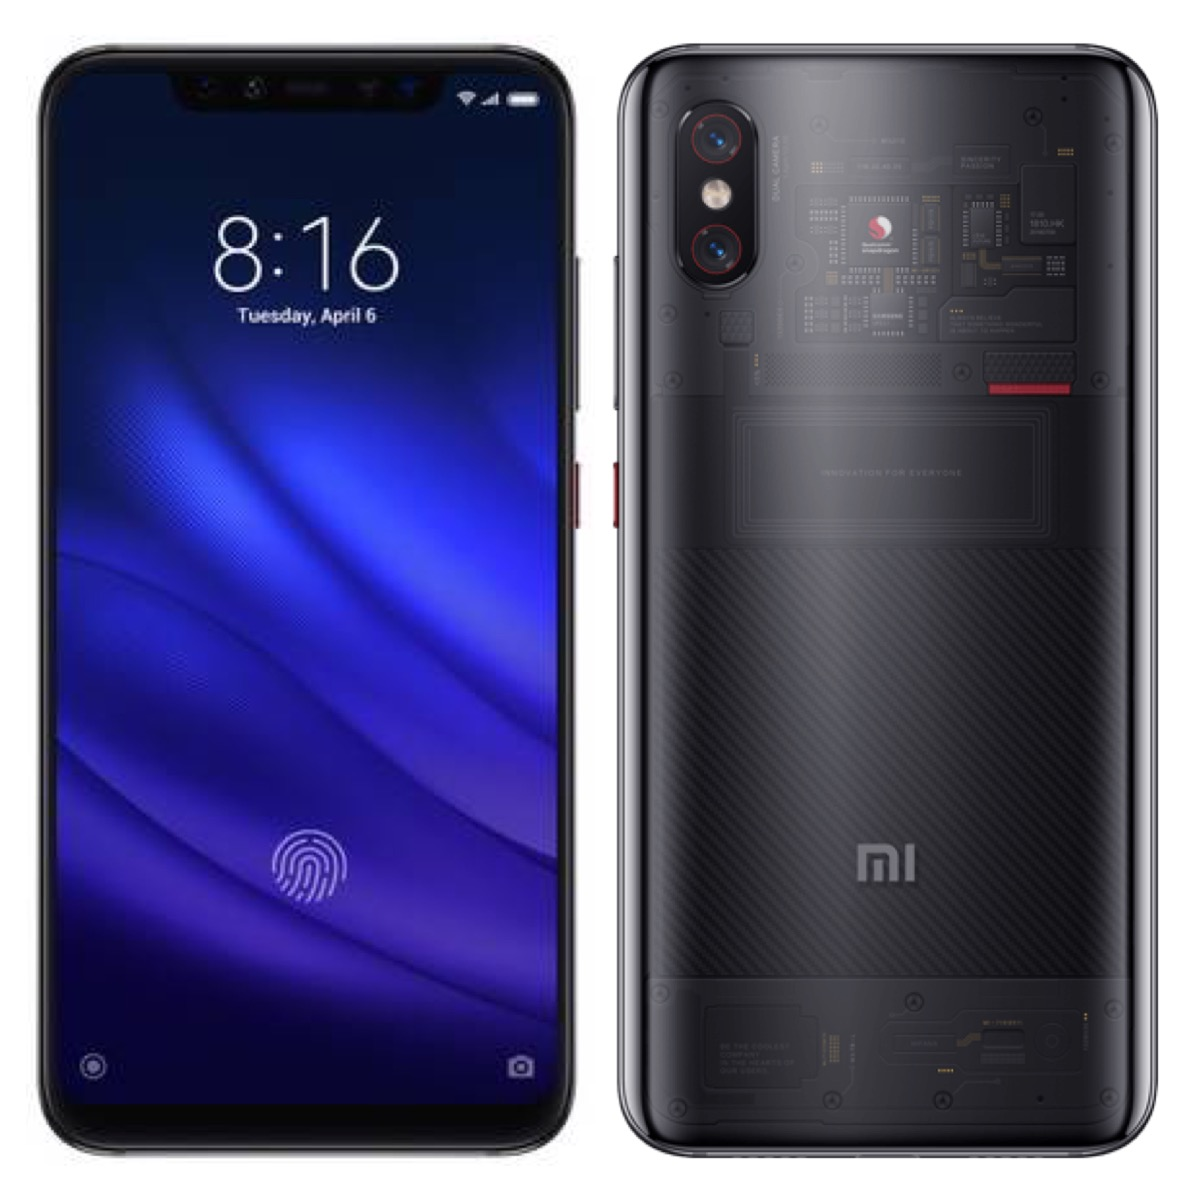 Sell Mi 8 Pro in Singapore